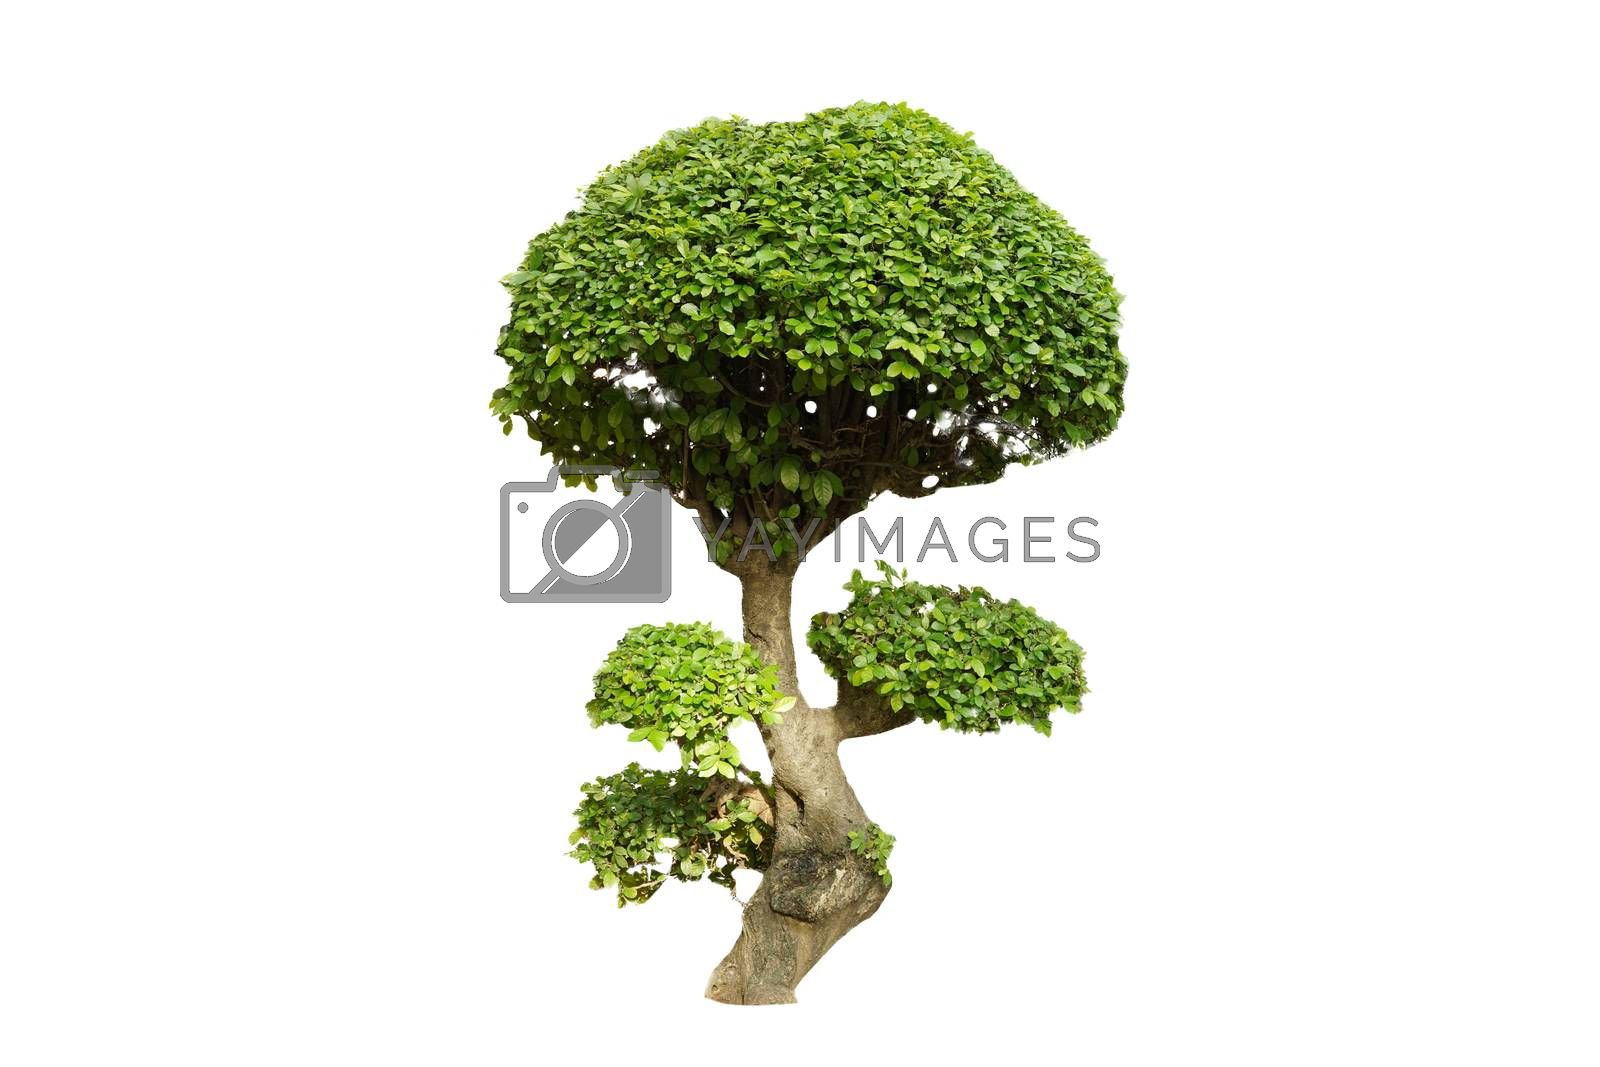 Green shrubs decorative branches isolated on white background